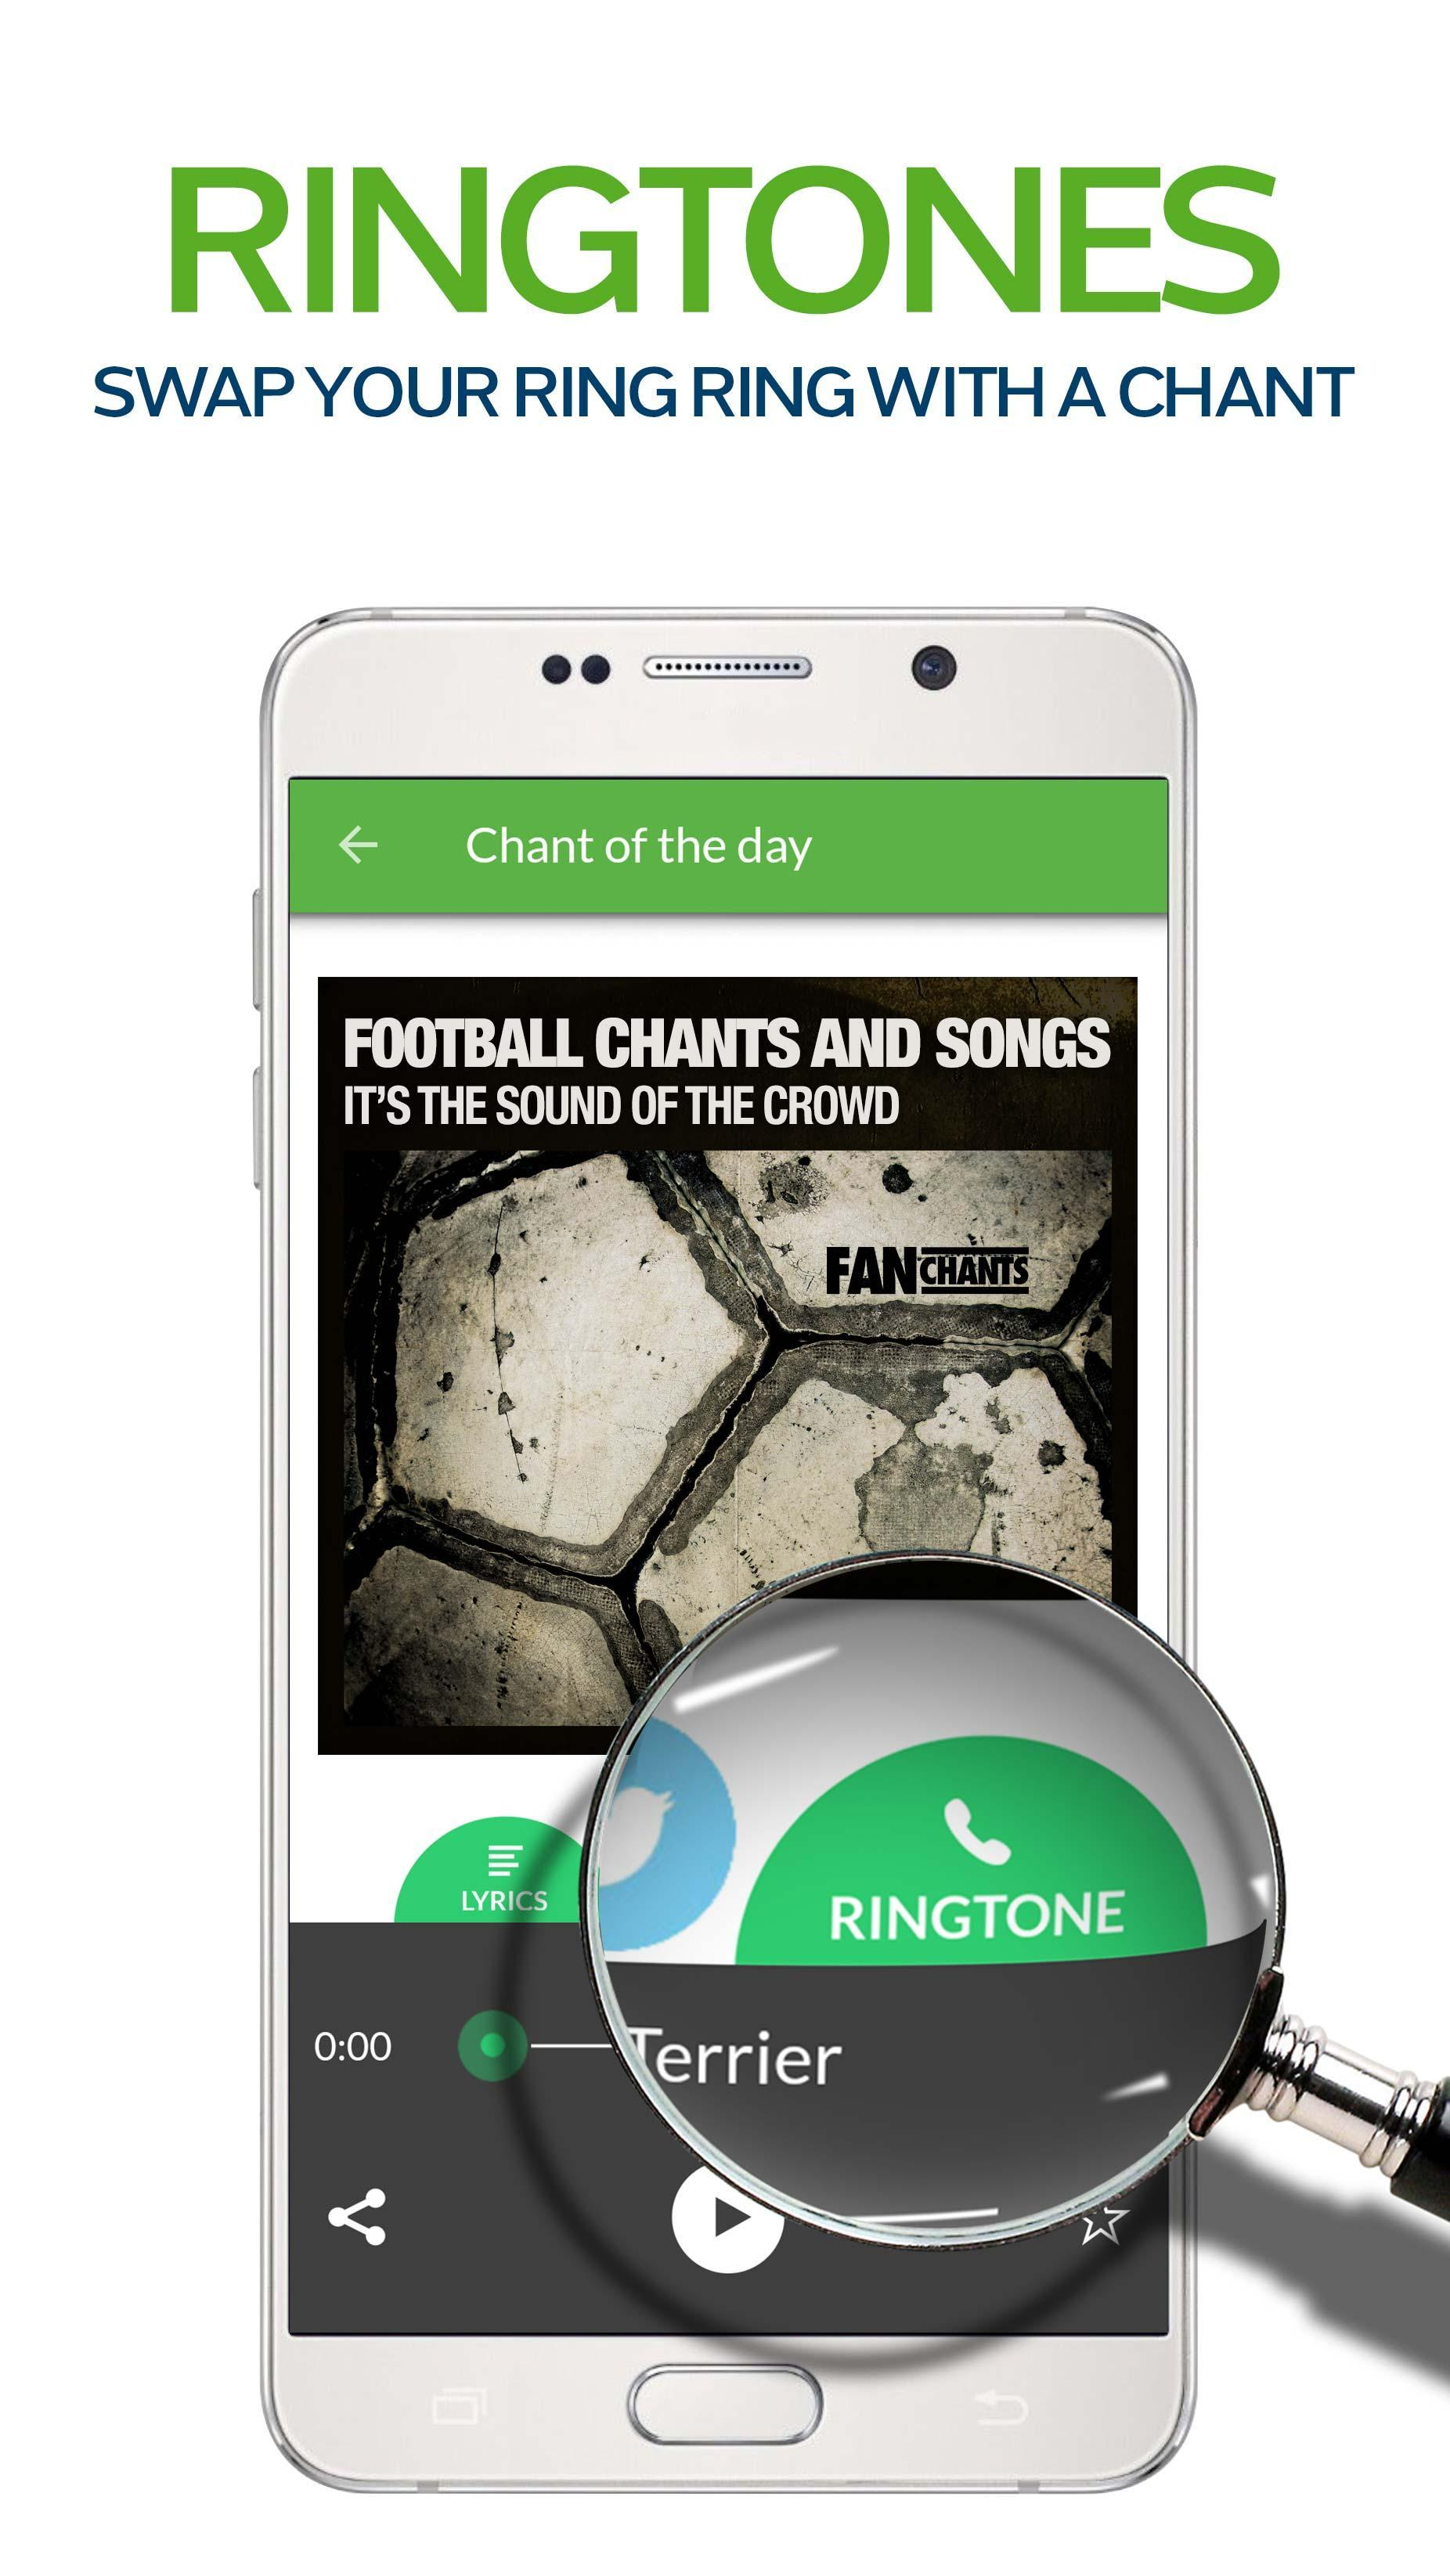 FanChants: Wolves Fans Songs & Chants for Android - APK Download